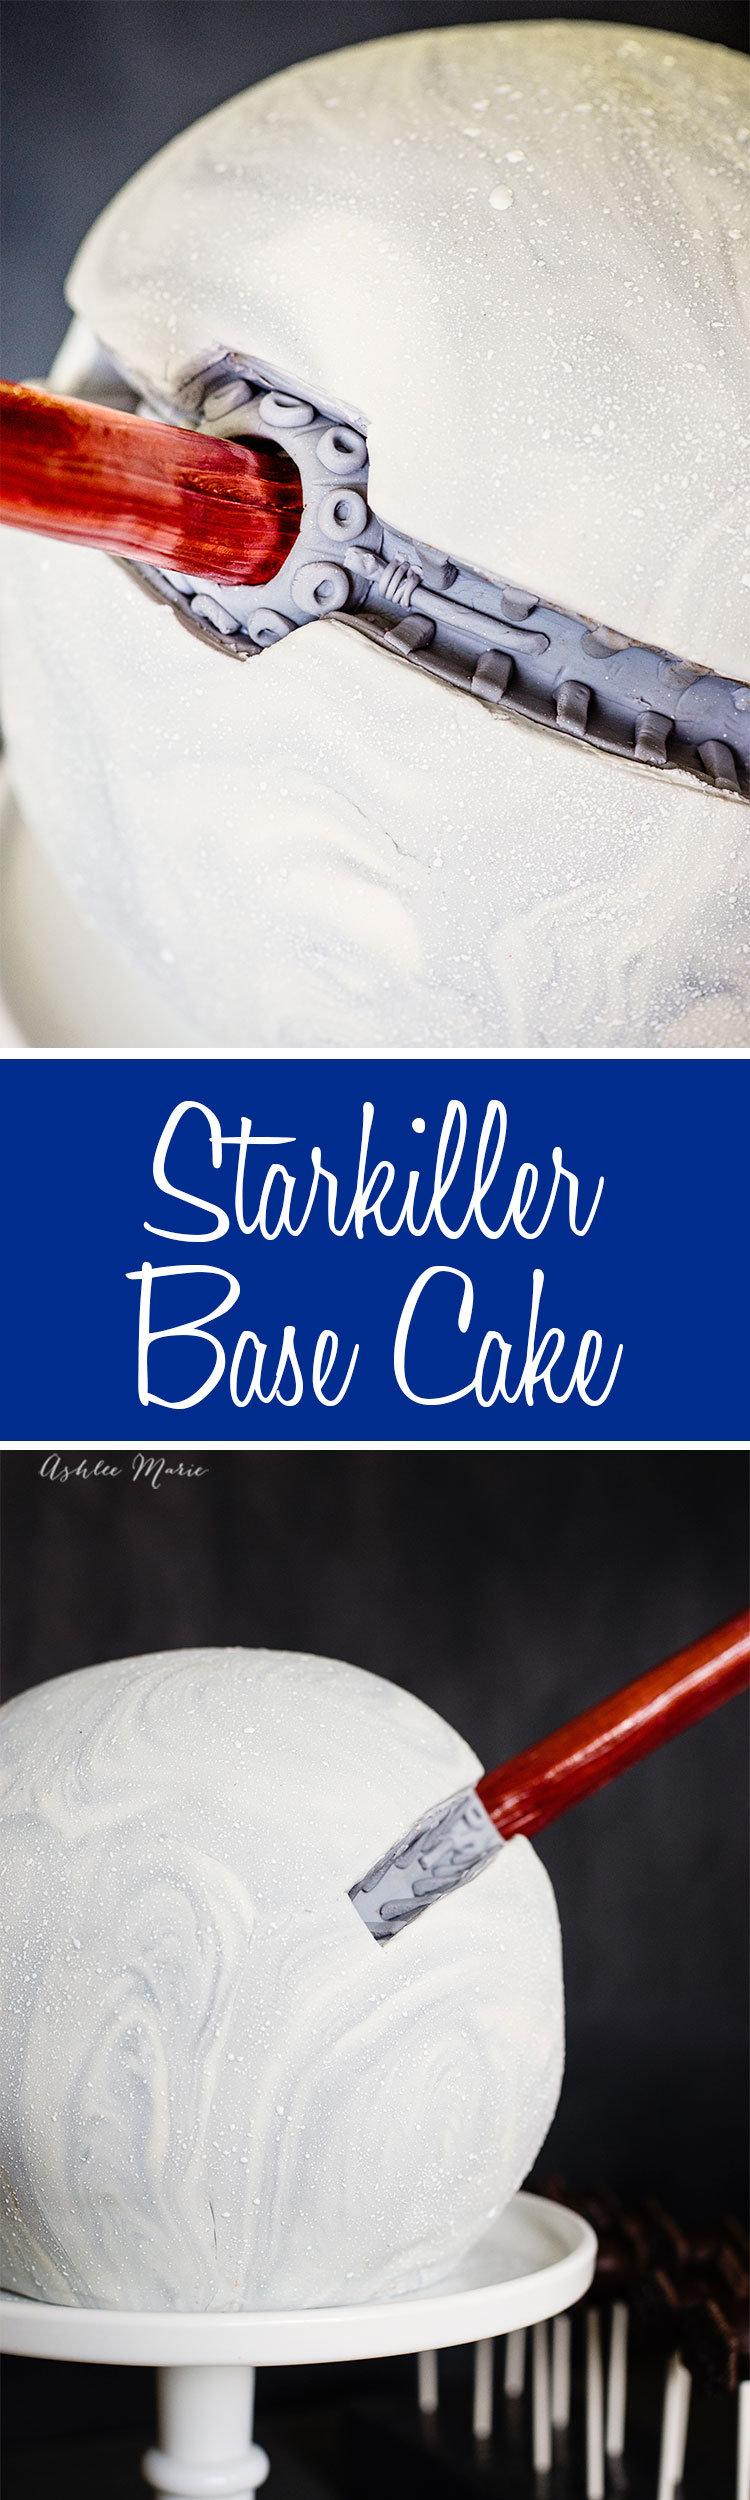 a full video tutorial for creating your own starkiller base cake - perfect for a star wars the force awakens birthday party